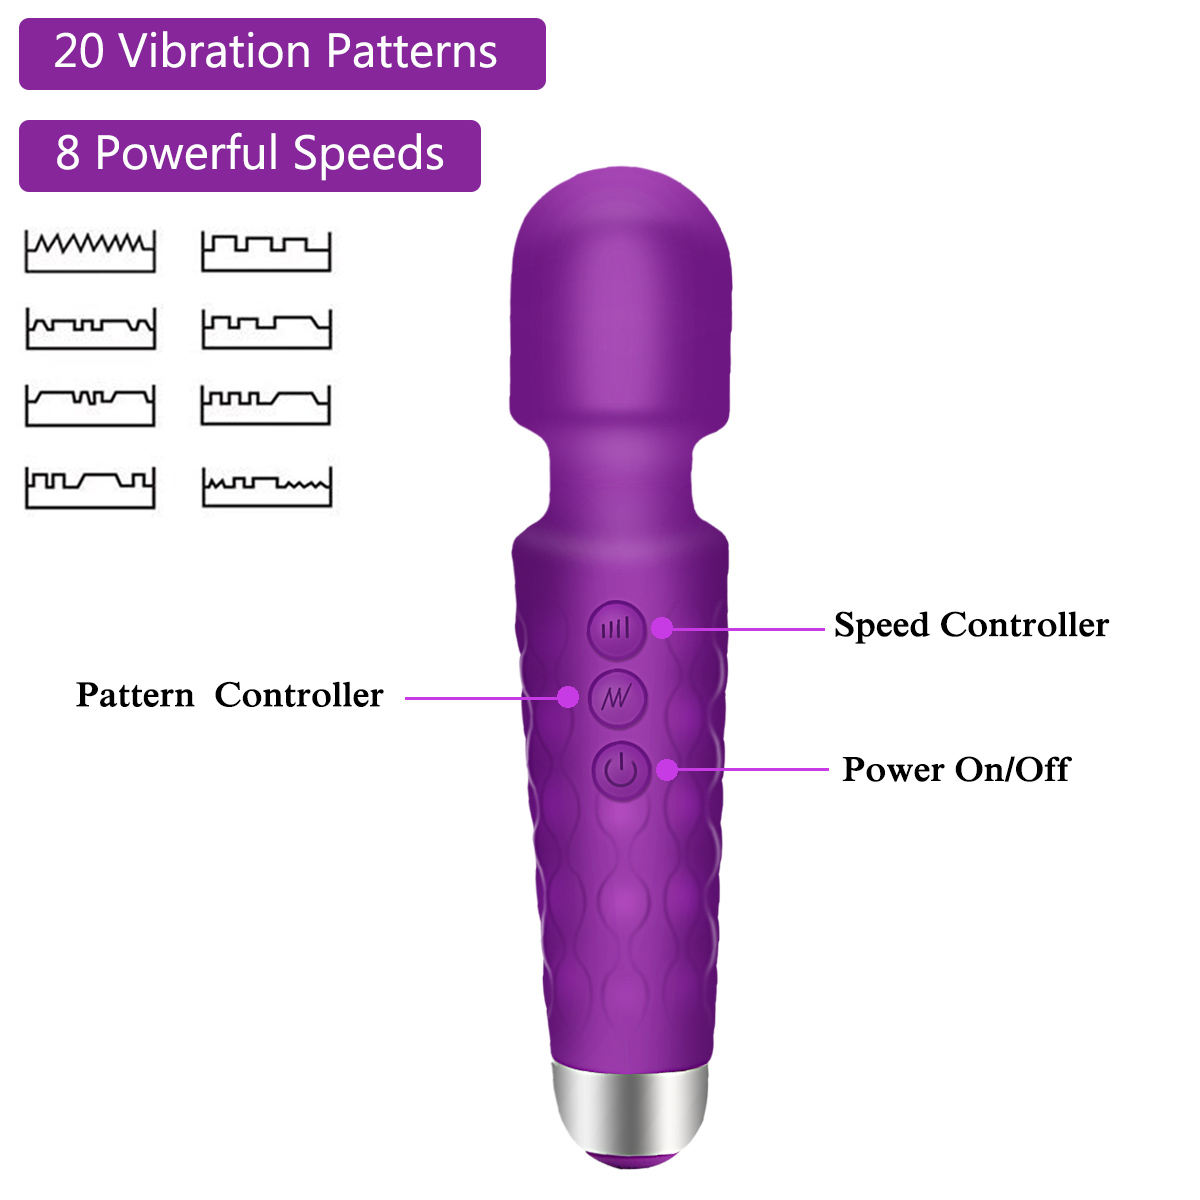 PALOQUETH Wand Vibrator With 20 Powerful Vibration Modes for Intense Frequent Orgasms